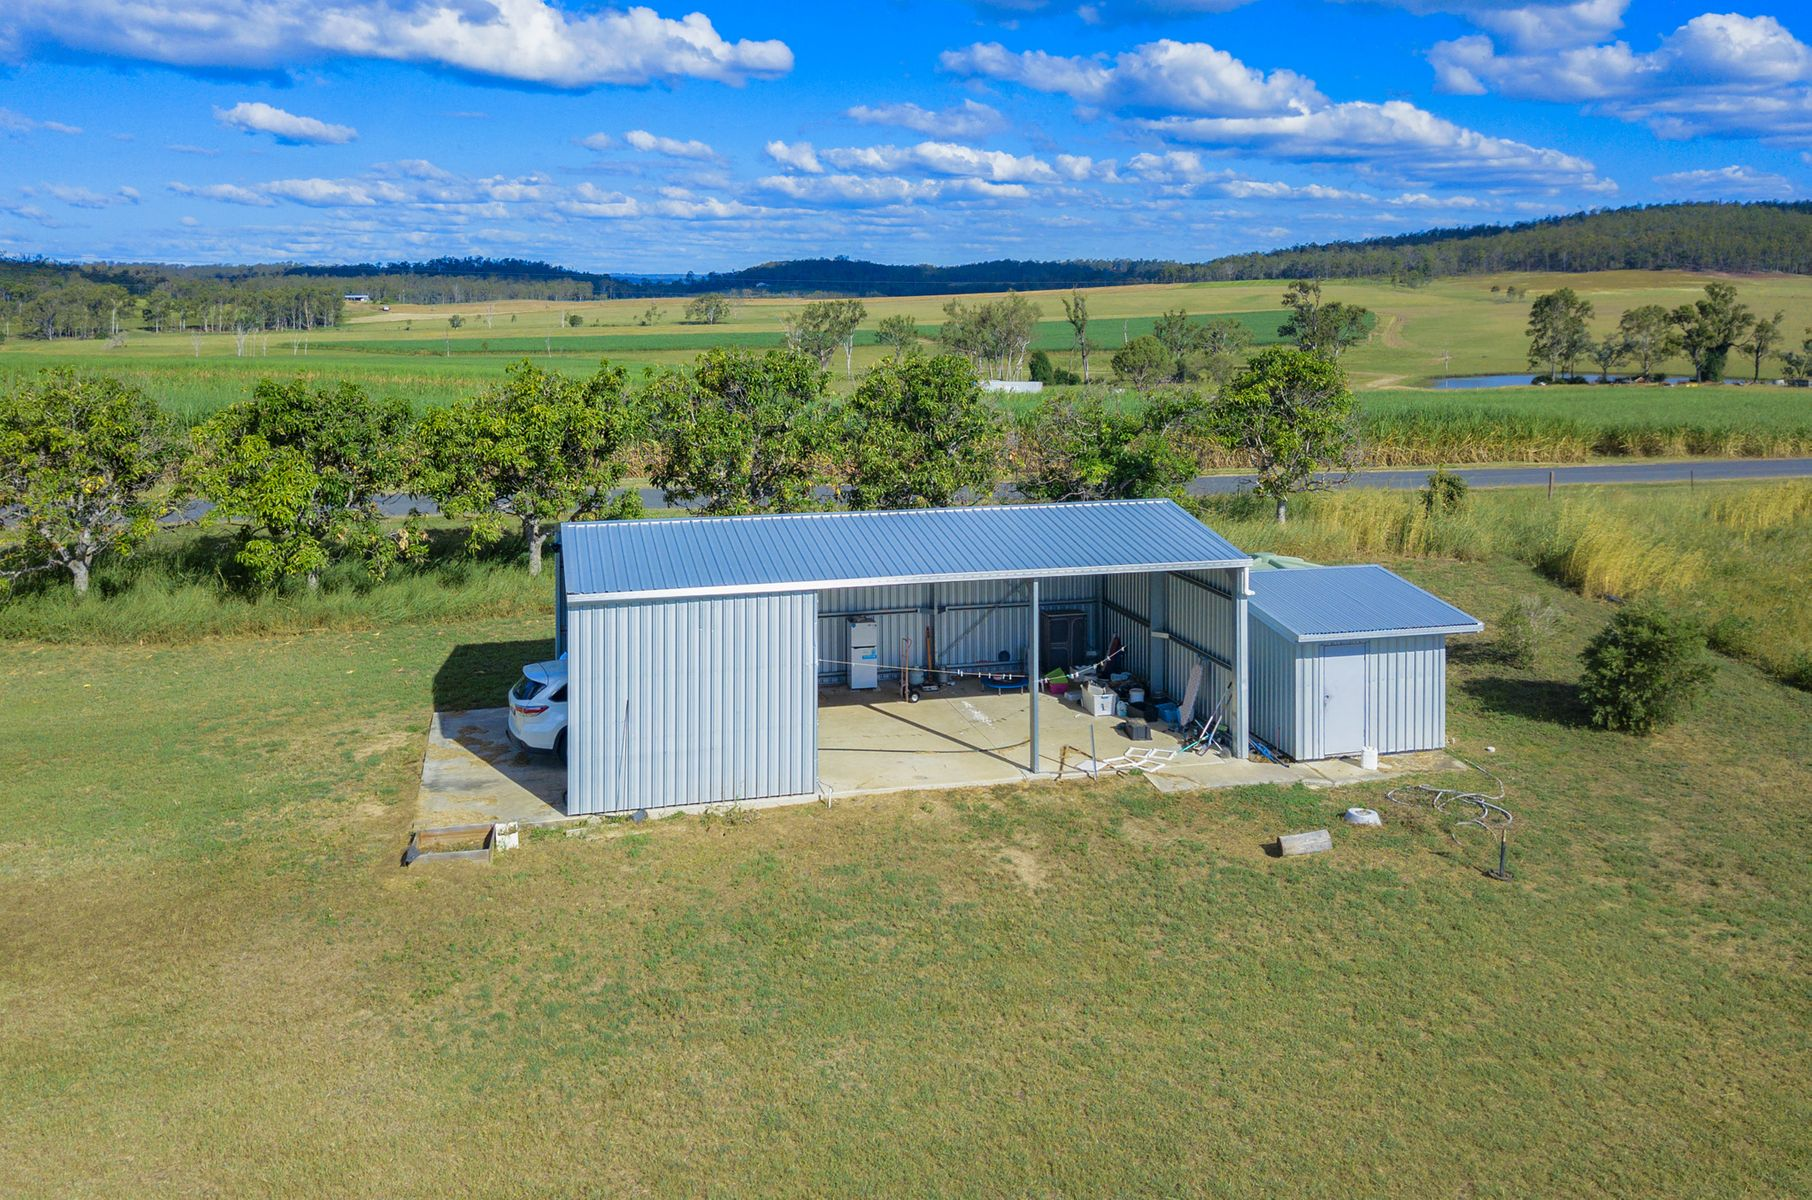 337 Sondergelds Road, McIlwraith, QLD 4671